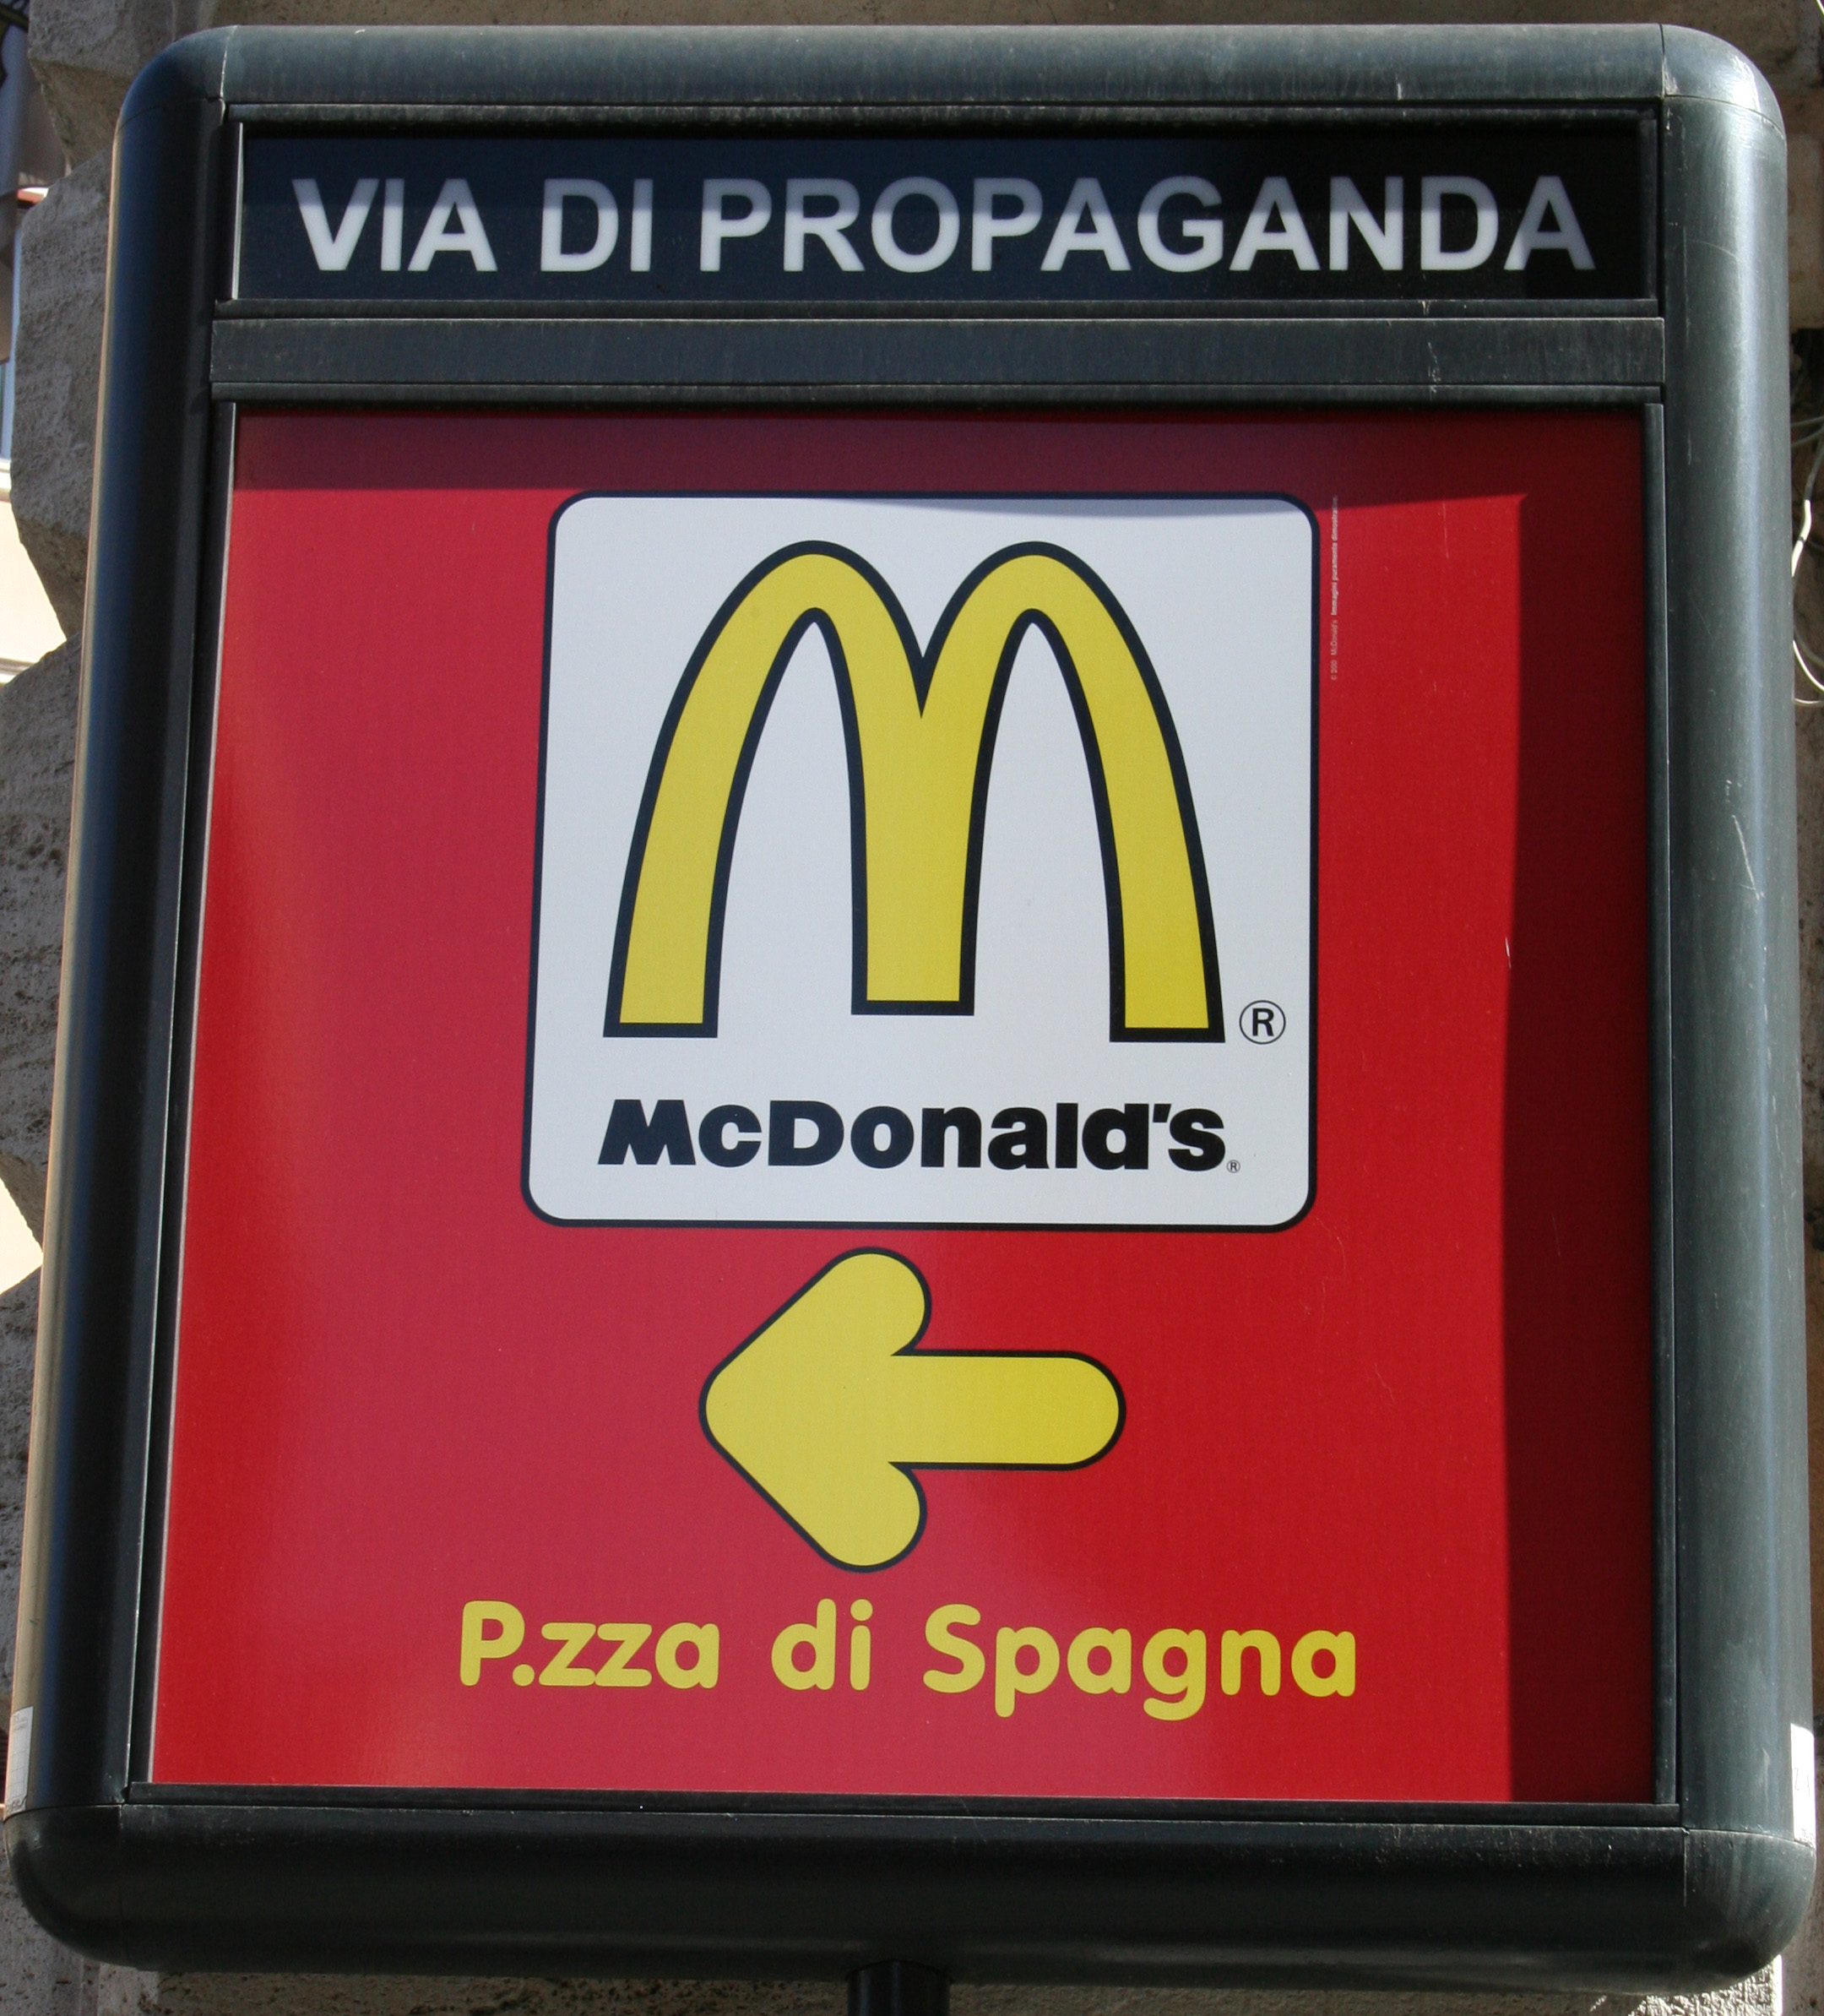 criticism of advertising advertising for mcdonald s on the via di propaganda rome